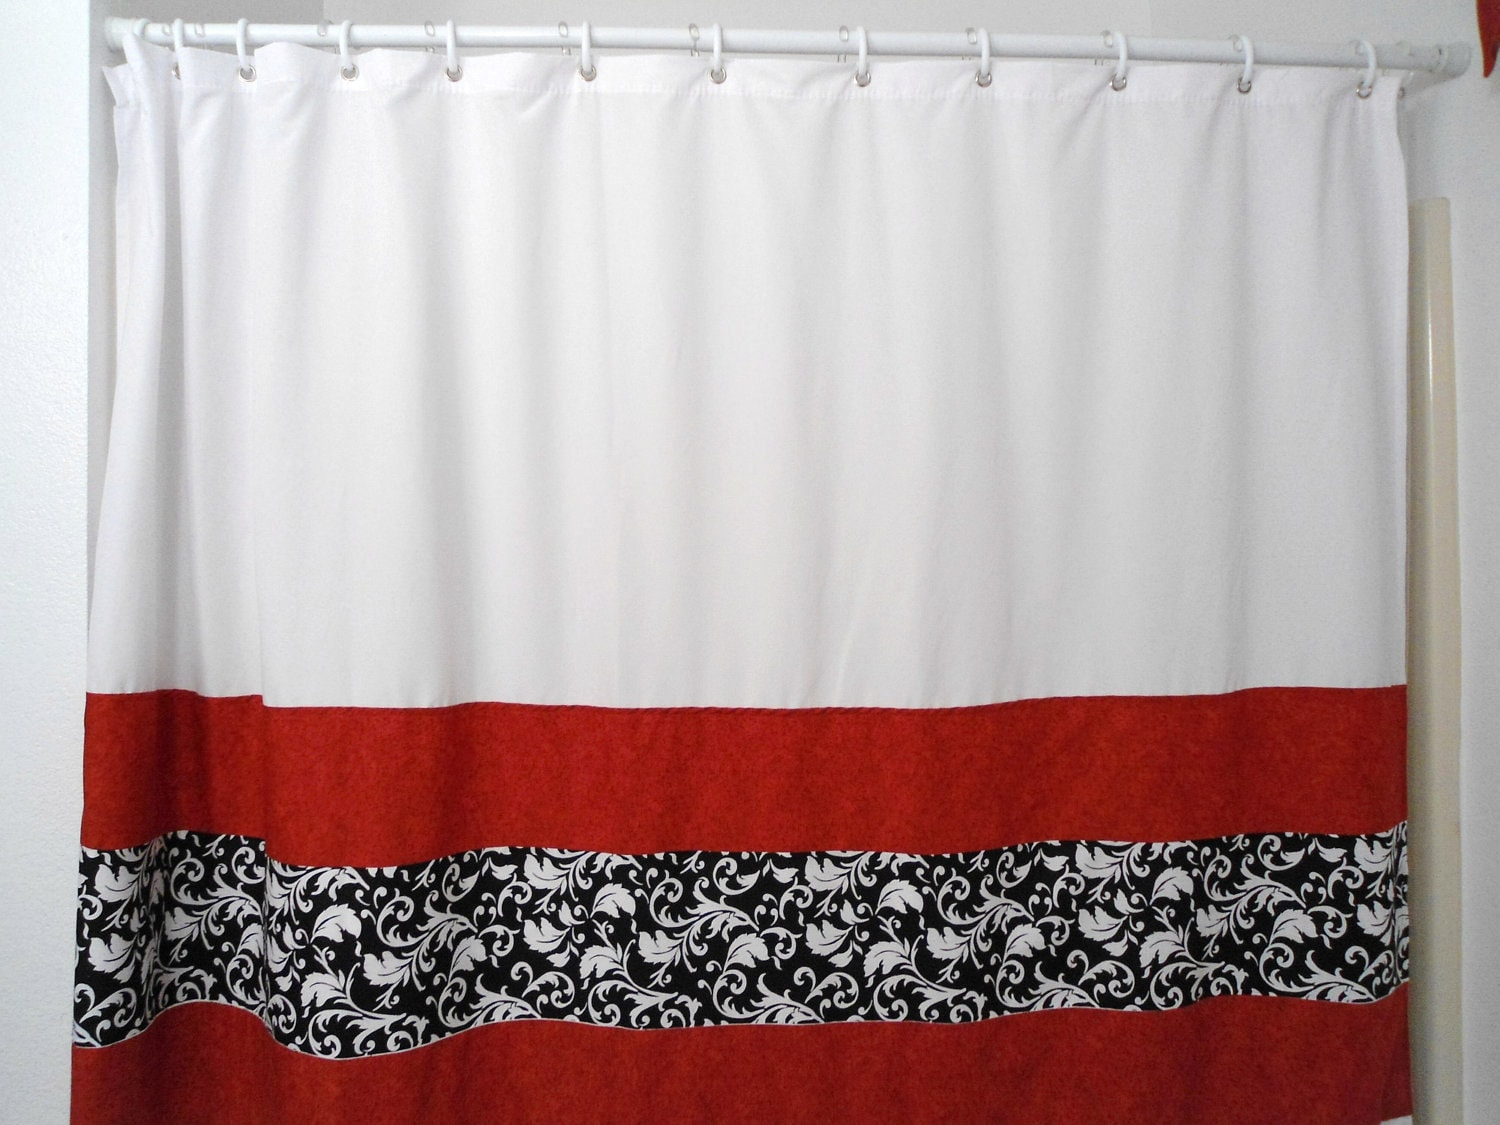 Shower CurtainWhite with Black and White Damask and by DREAMATHEME